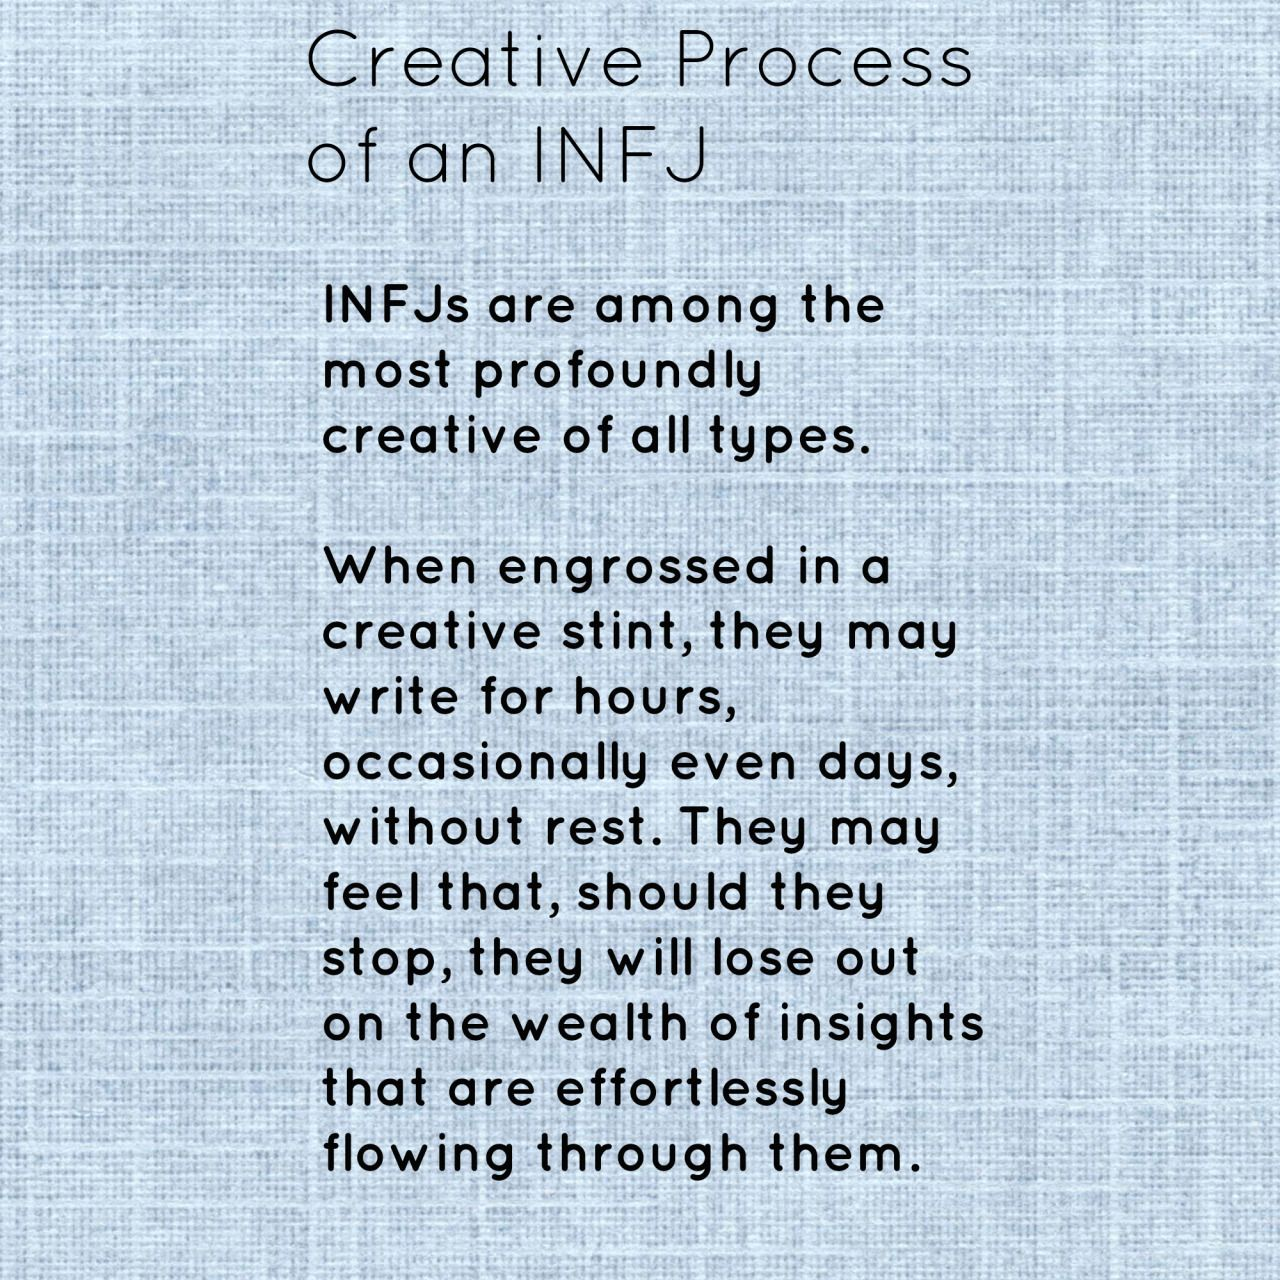 INFJ || Creative. When I am creating, don't enter the room, don't speak to me, leave me alone. I will forget to eat & sleep. I will work even throughout the night until I am at a point when I can stop or the creative energy flowing reaches a natural lull.